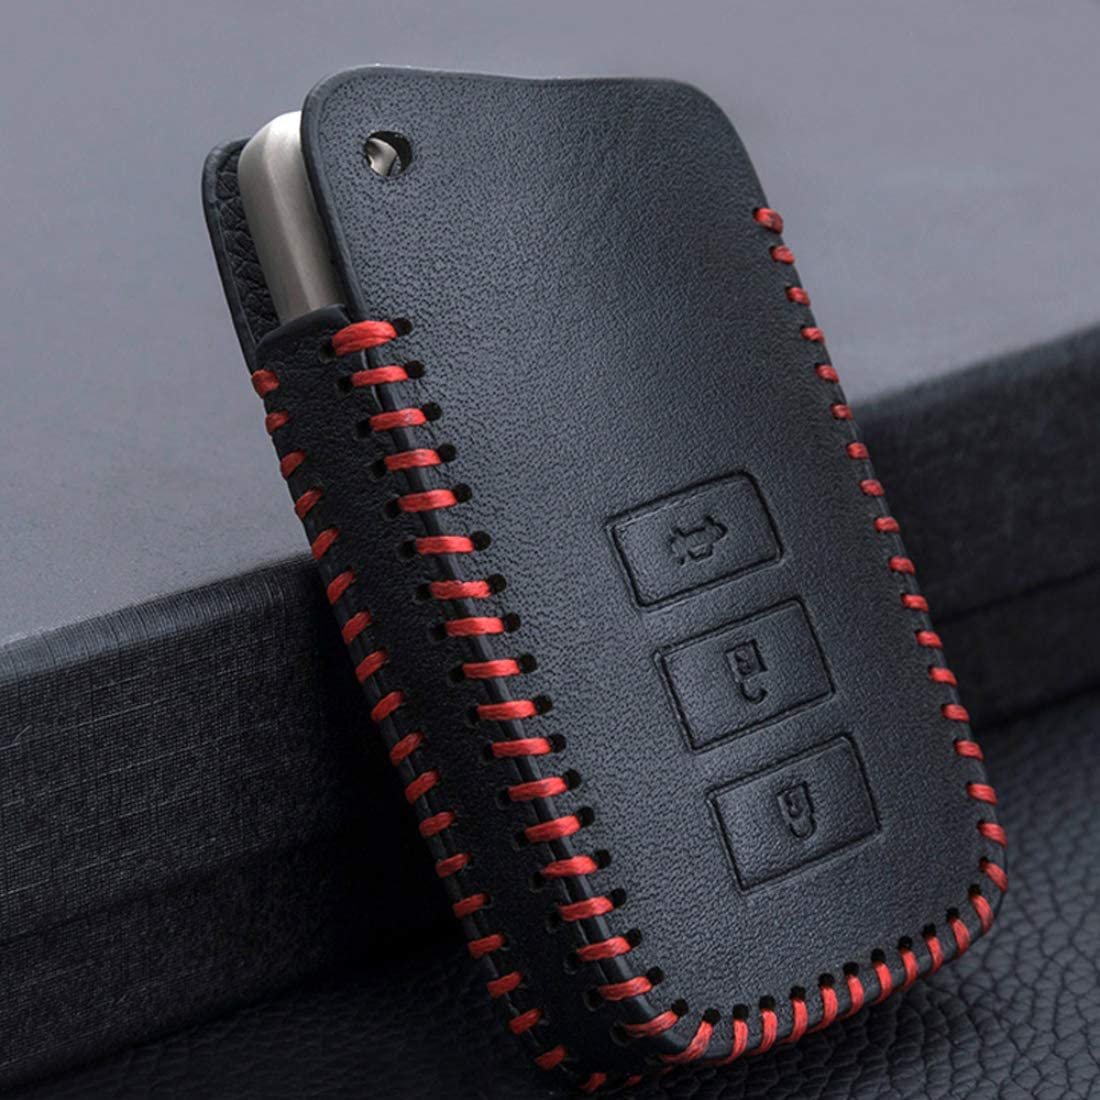 Cajek for Lexus Key Fob Case TPU Skin Cover Protector with Keychain Compatible with 2013-Up Lexus RX RC ES is GS NX GX LX LS UX LC 3//4 Buttons Smart Keyless Entry Remote Control Blue